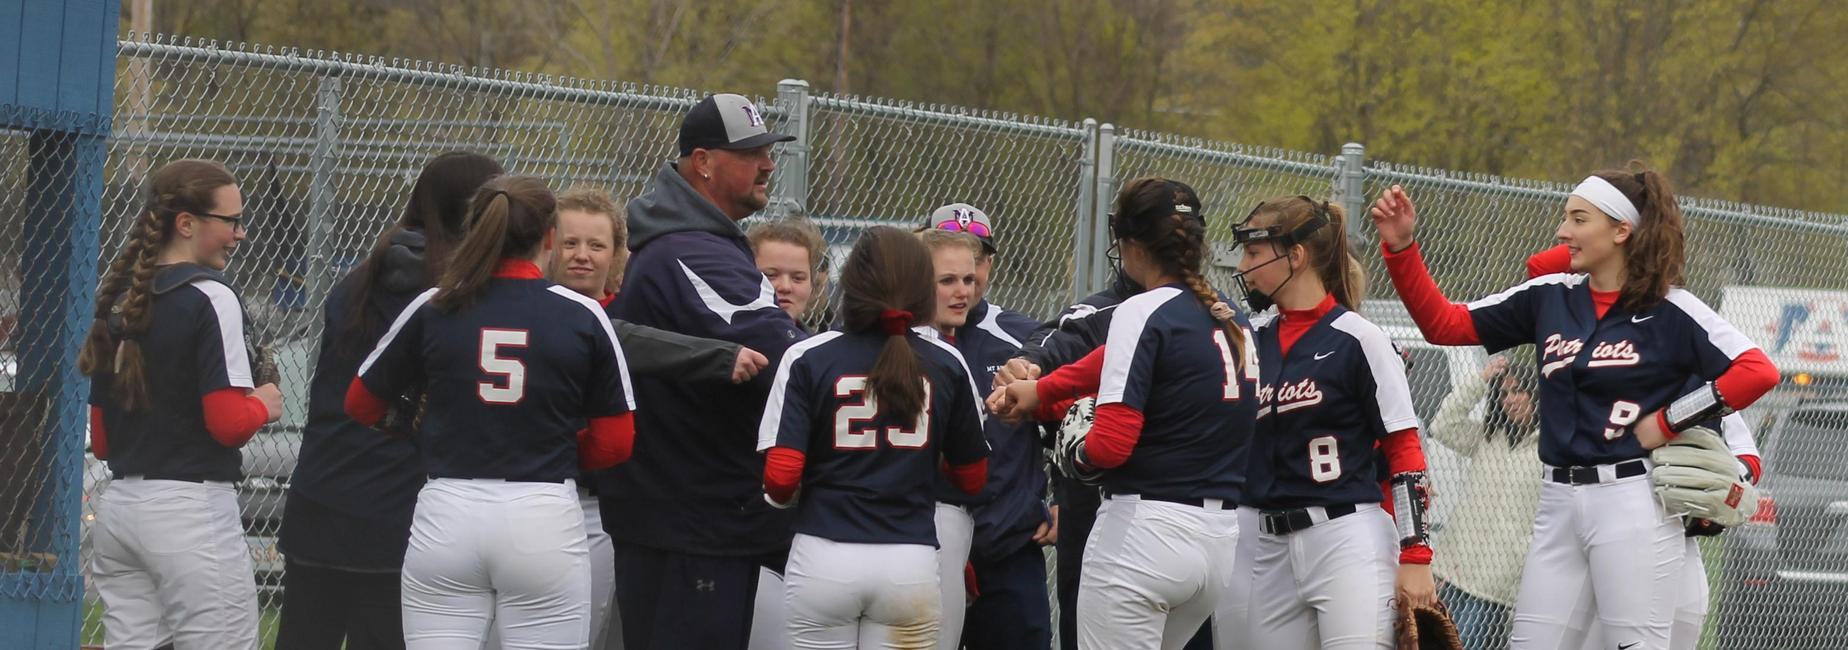 softball huddle